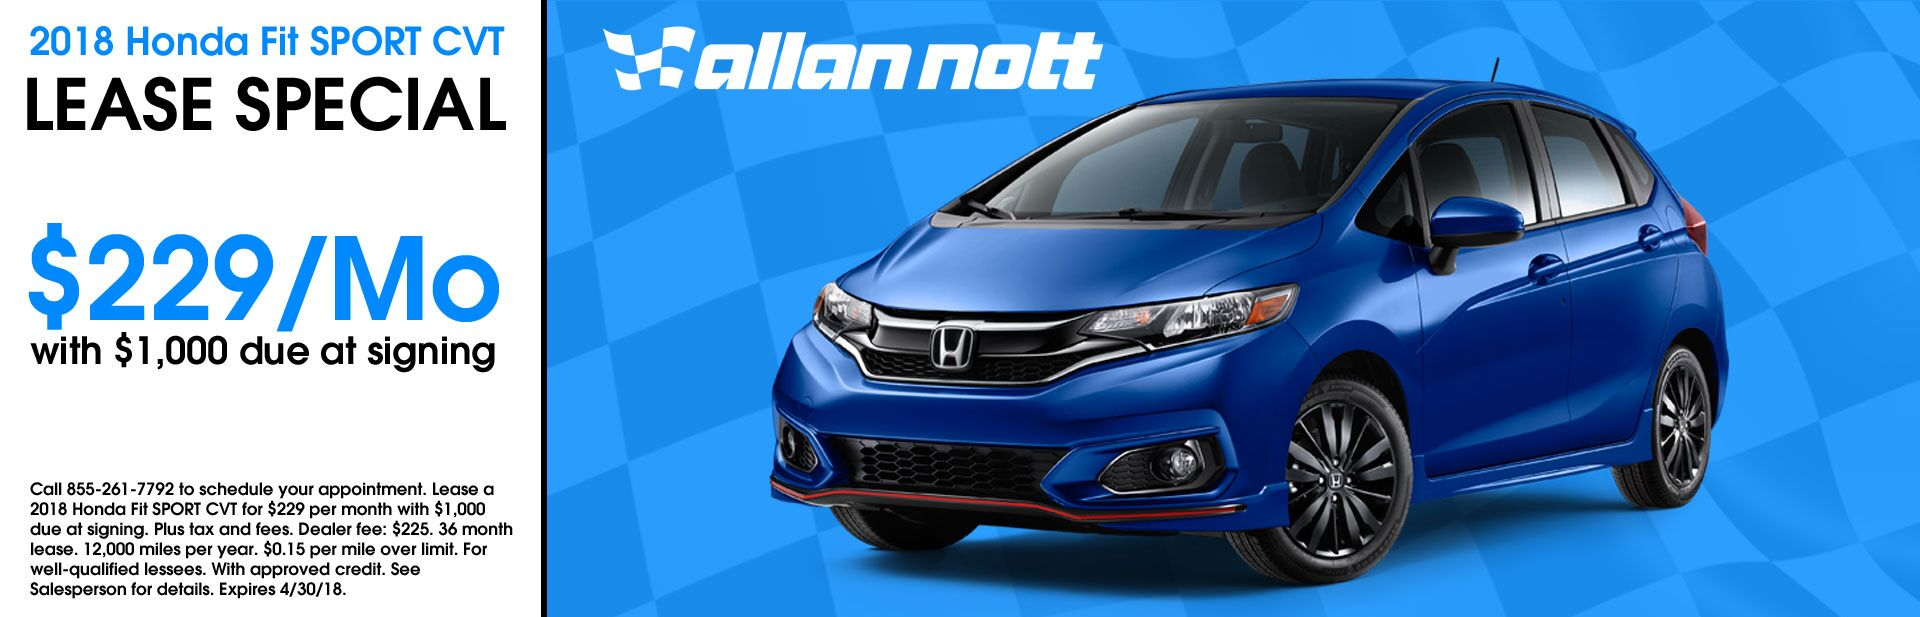 April 2018 - 2018 Honda Fit Sport CVT Lease Special